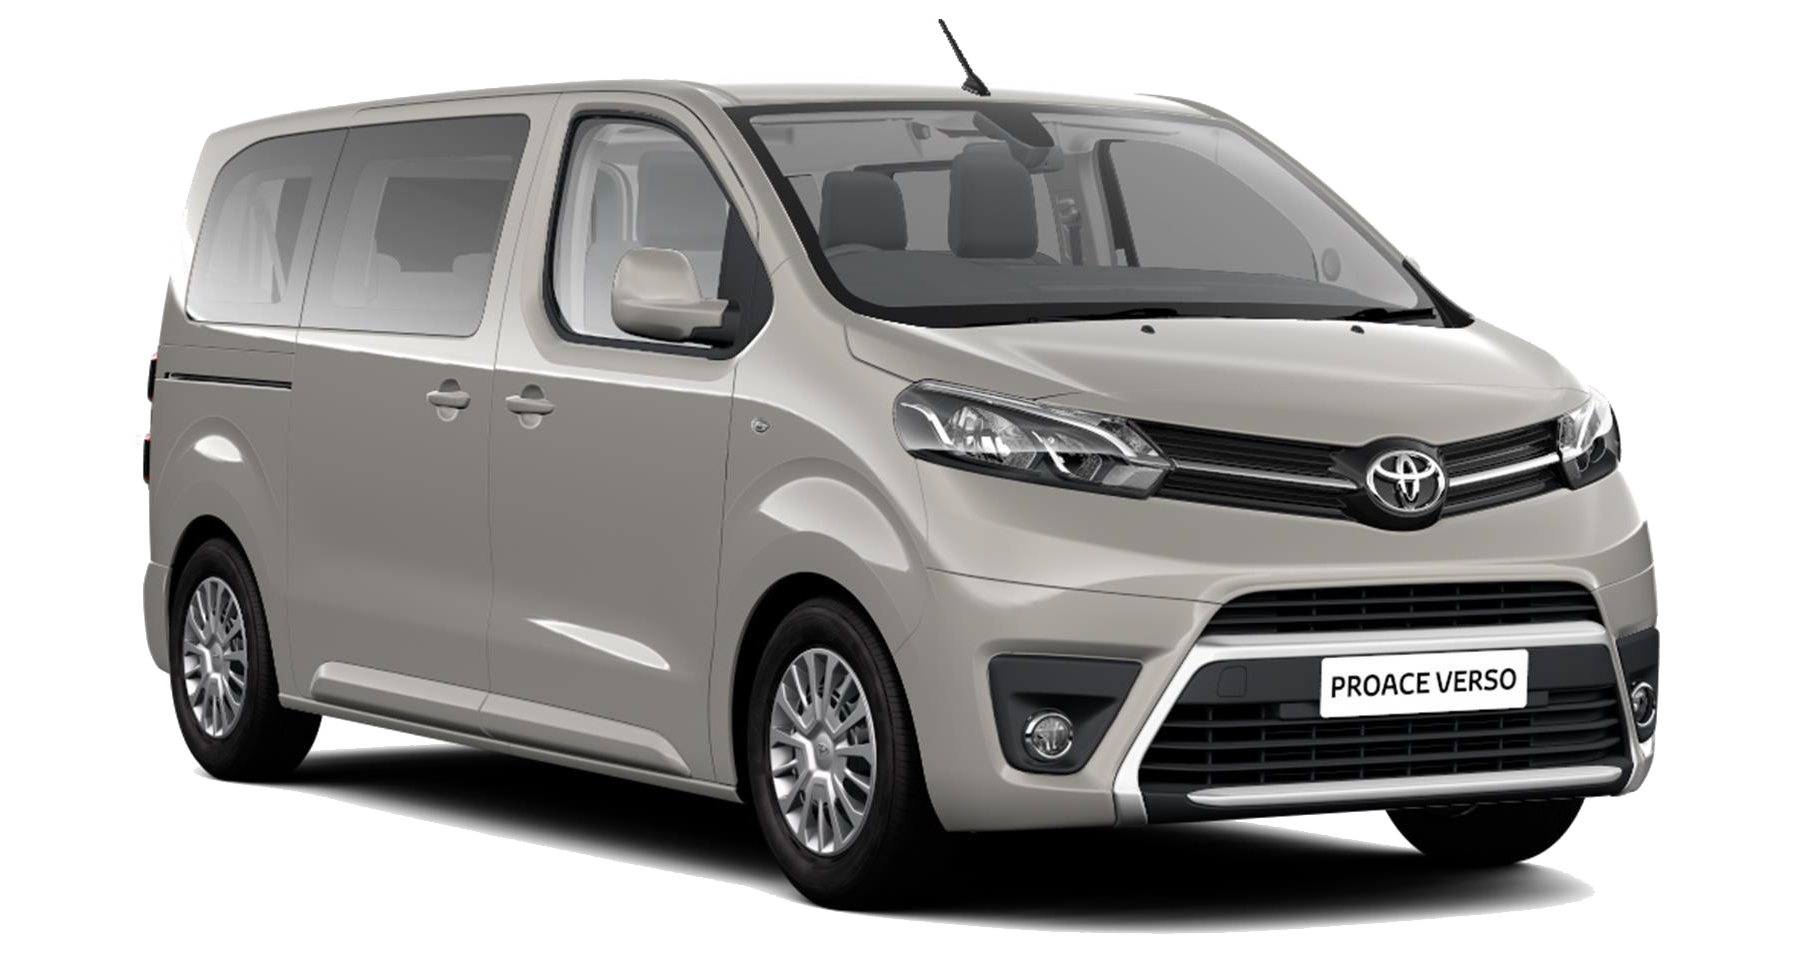 Toyota Proace Verso - Available in Grey Limestone